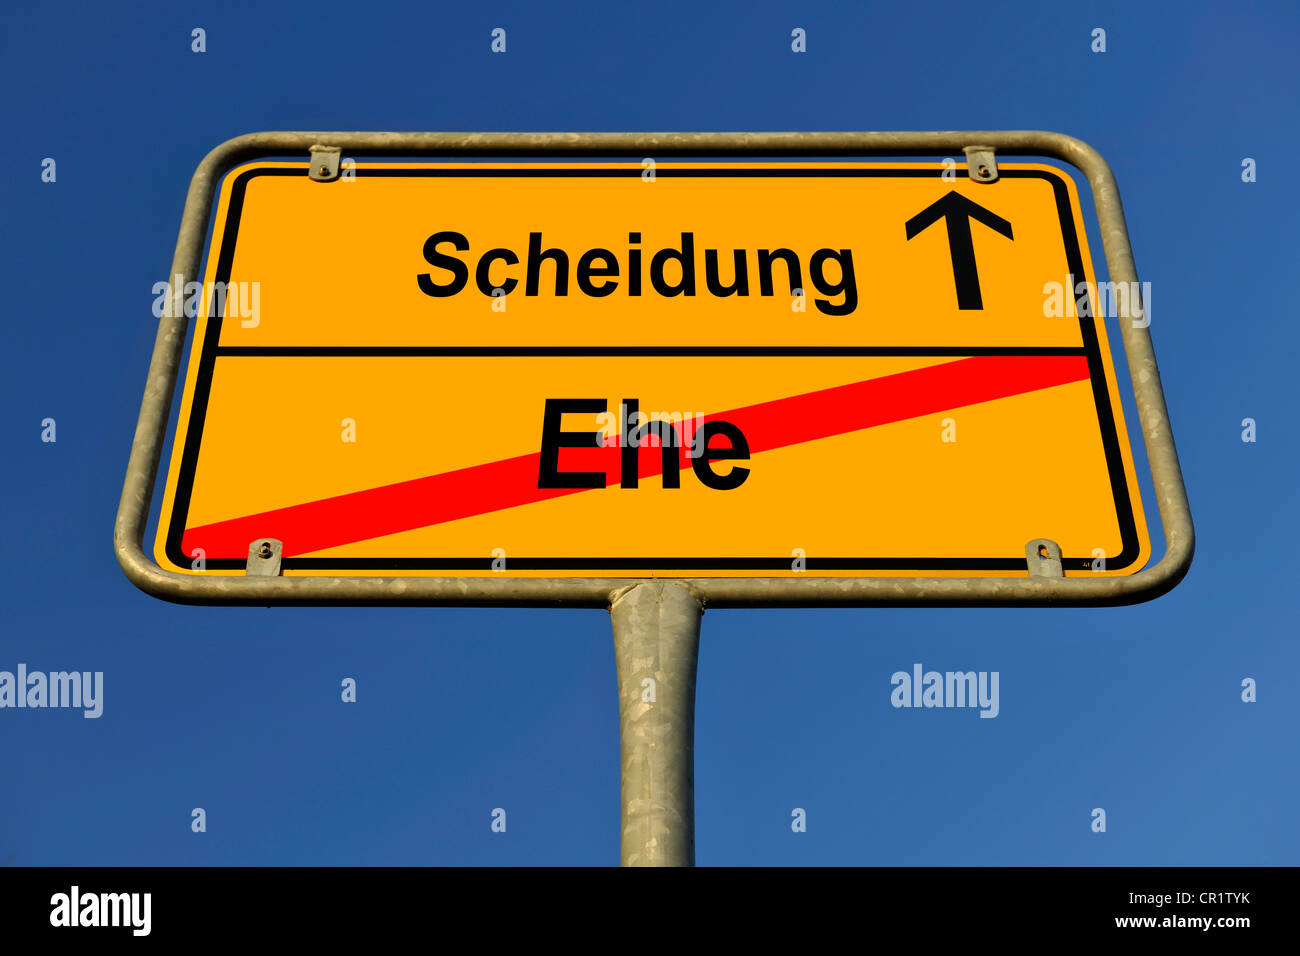 City limit sign, symbolic image for the way from Ehe to Scheidung, German for going from being married to having - Stock Image